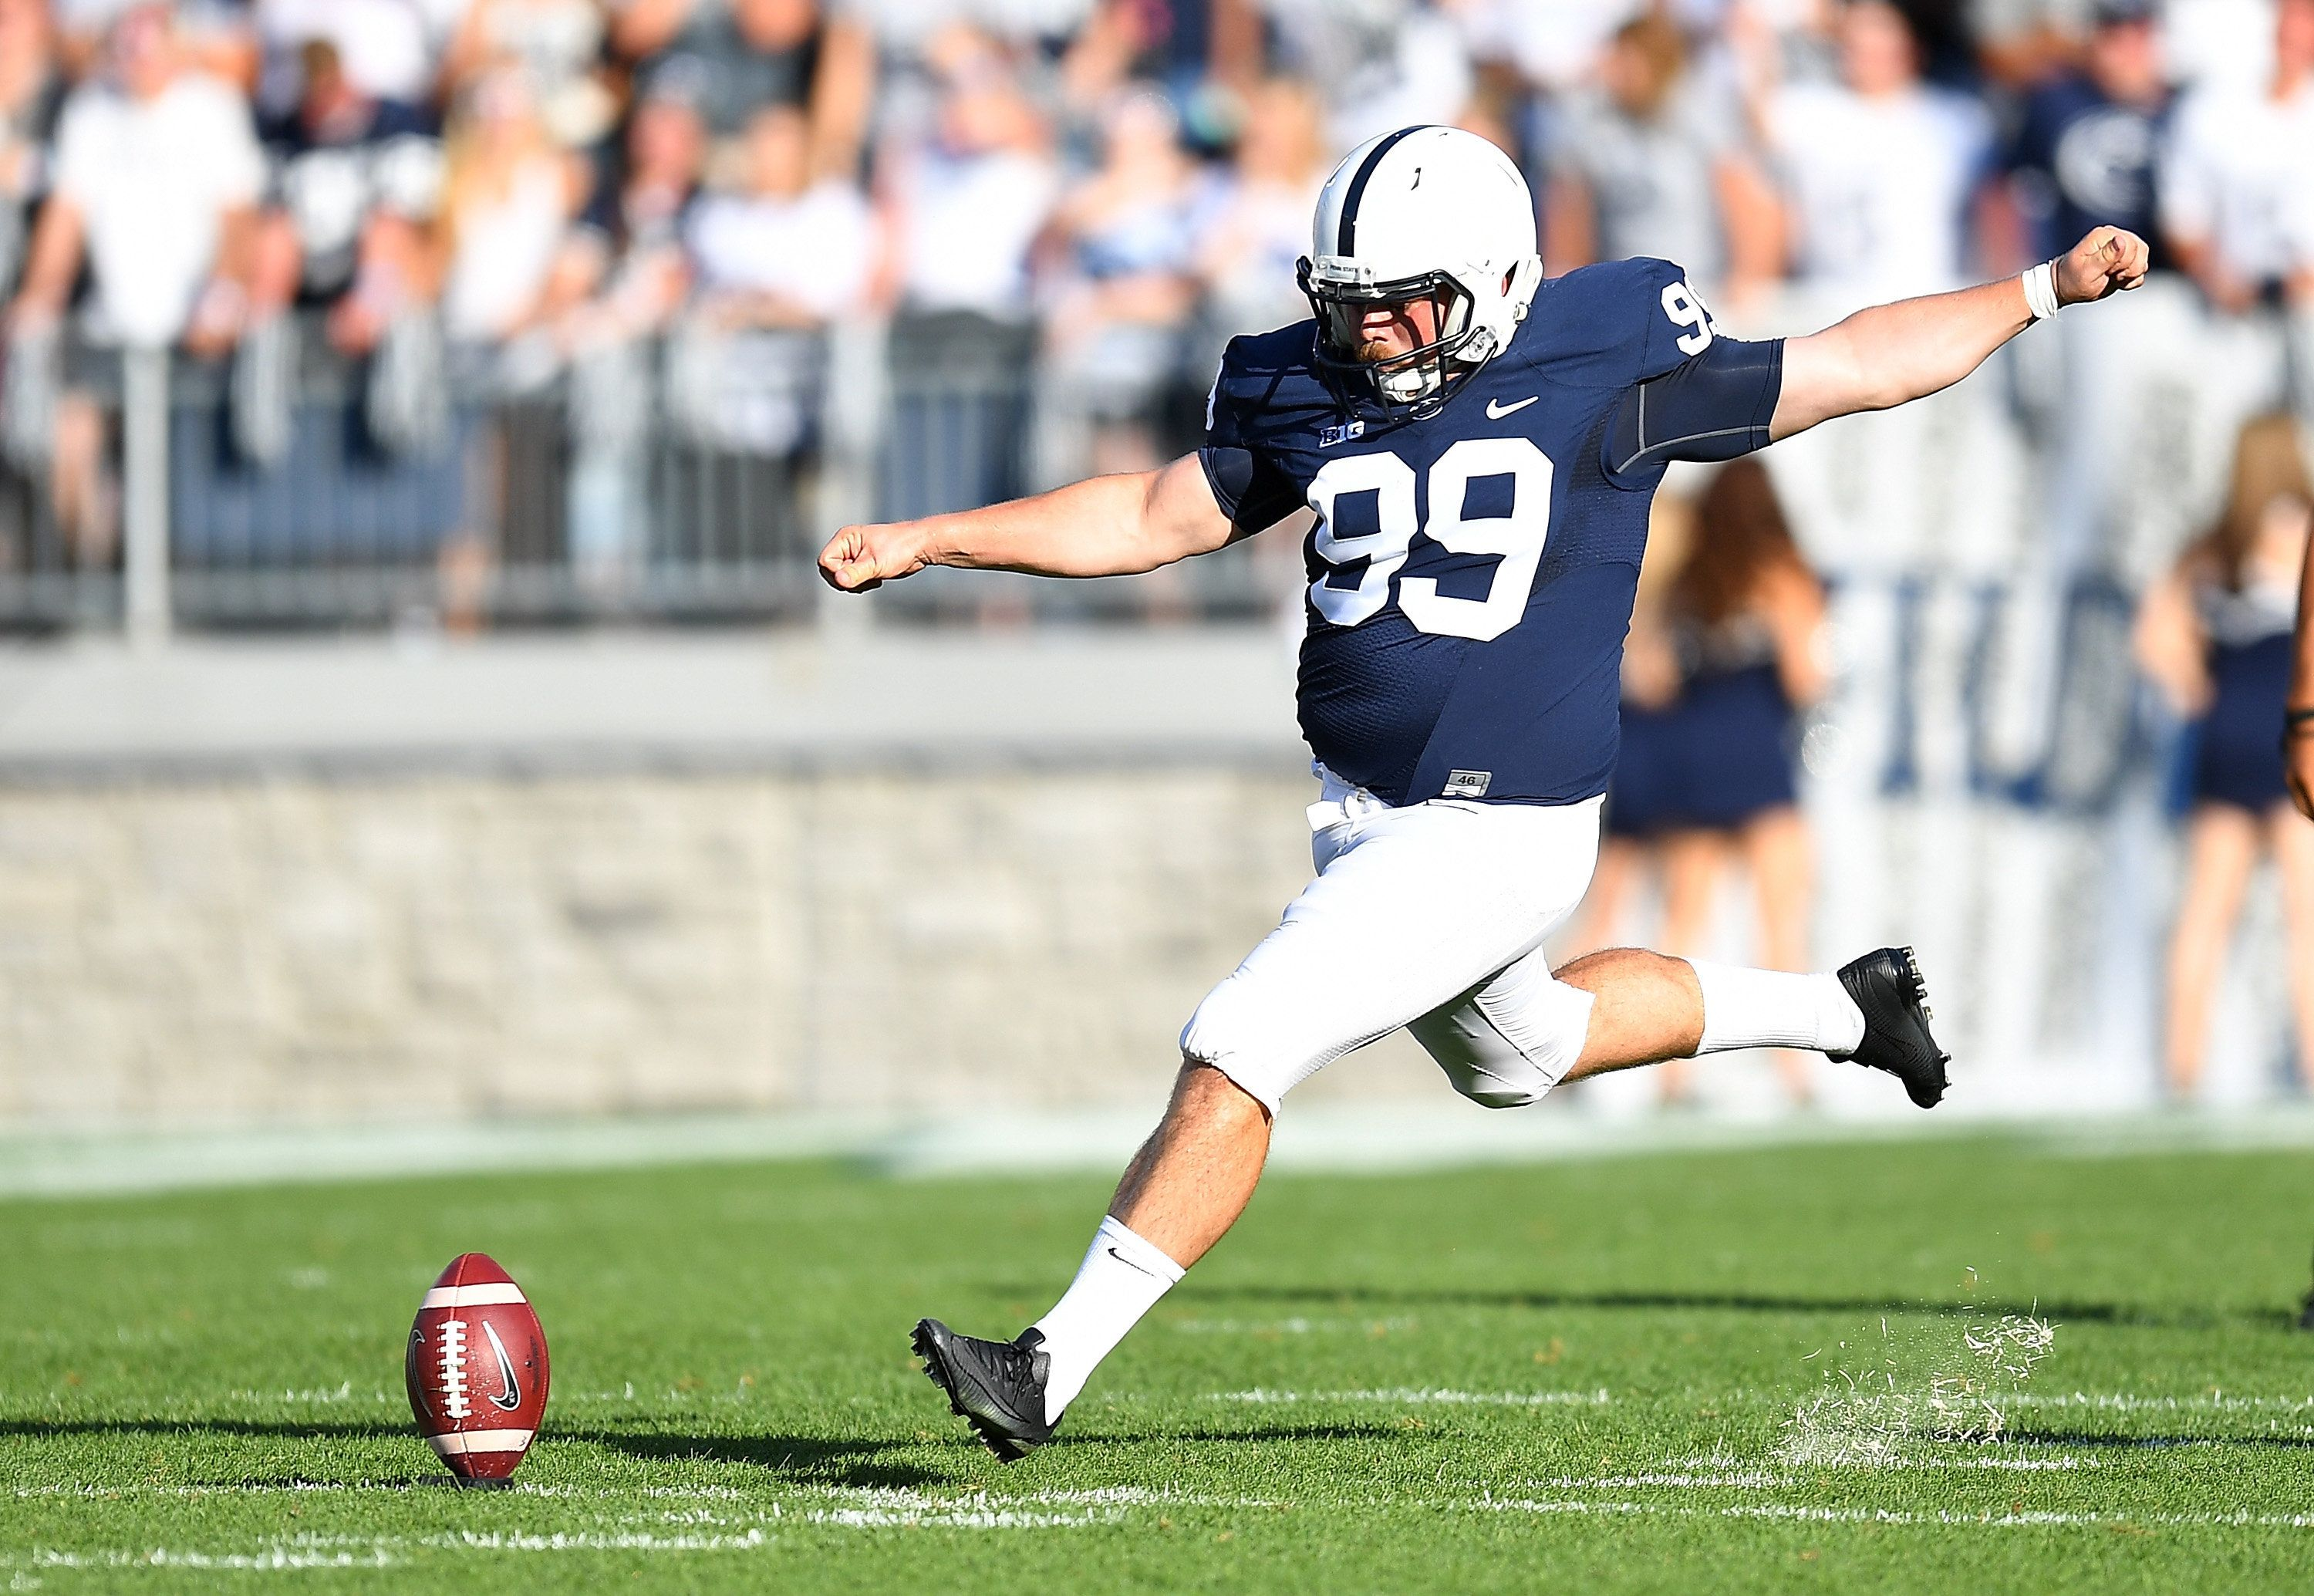 STATE COLLEGE, PA - SEPTEMBER 3:  Joey Julius #99 of the Penn State Nittany Lions in action during the game against the Kent State Golden Flashes at Beaver Stadium on September 3, 2016 in State College, Pennsylvania.  (Photo by Joe Sargent/Getty Images) *** Local Caption ***